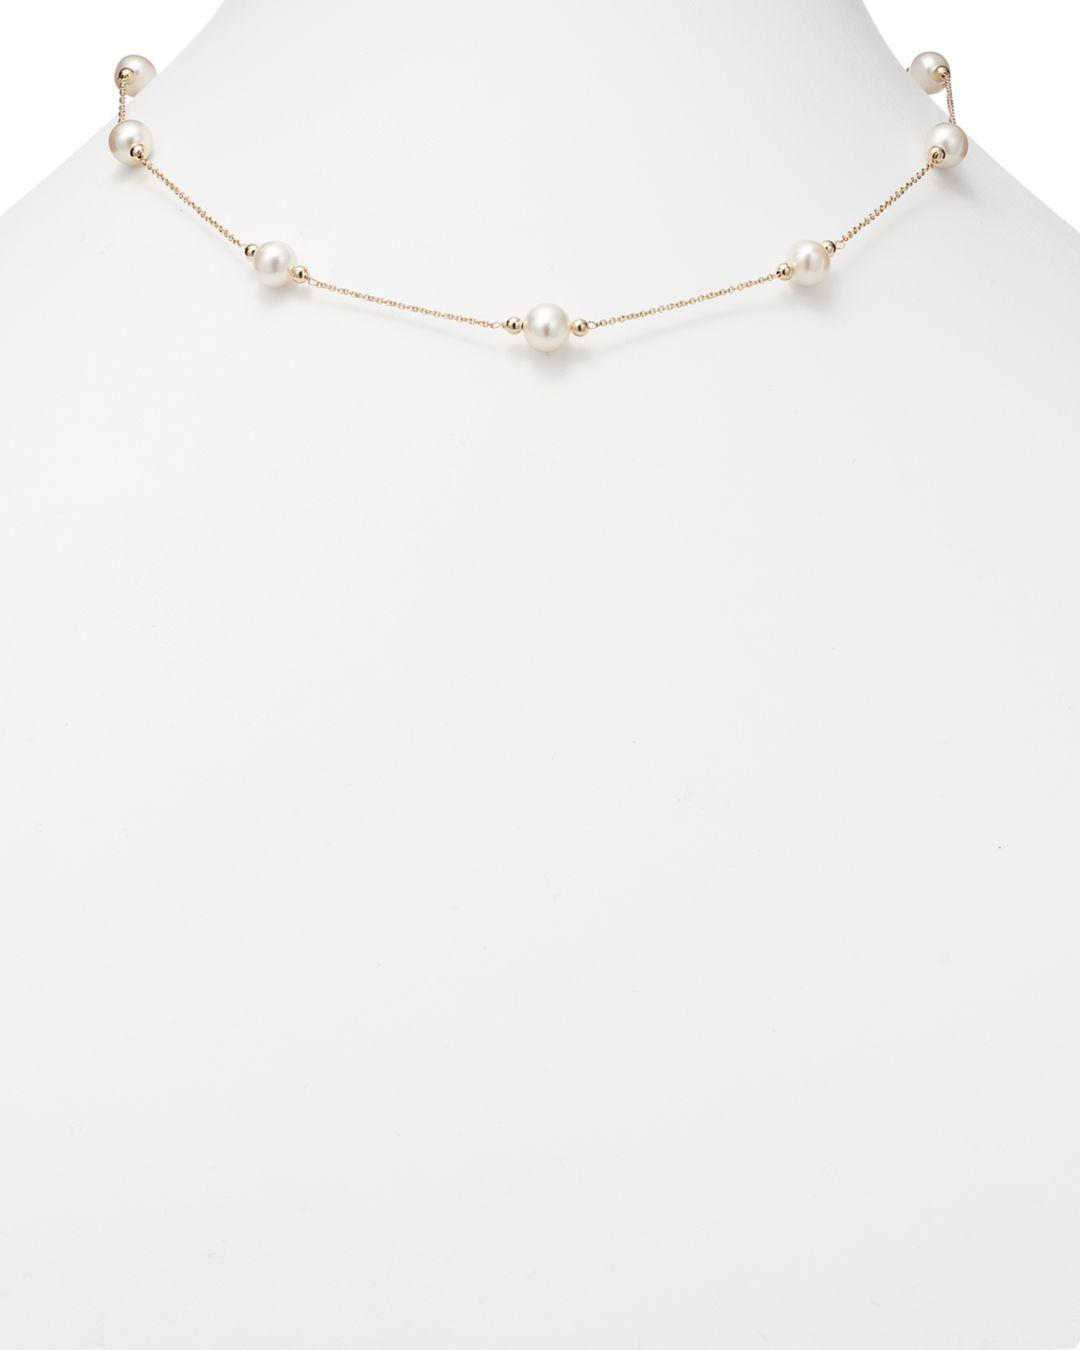 Bloomingdale's Cultured Freshwater Pearl And Beaded Station Necklace In 14k Yellow Gold in White/Gold (White)